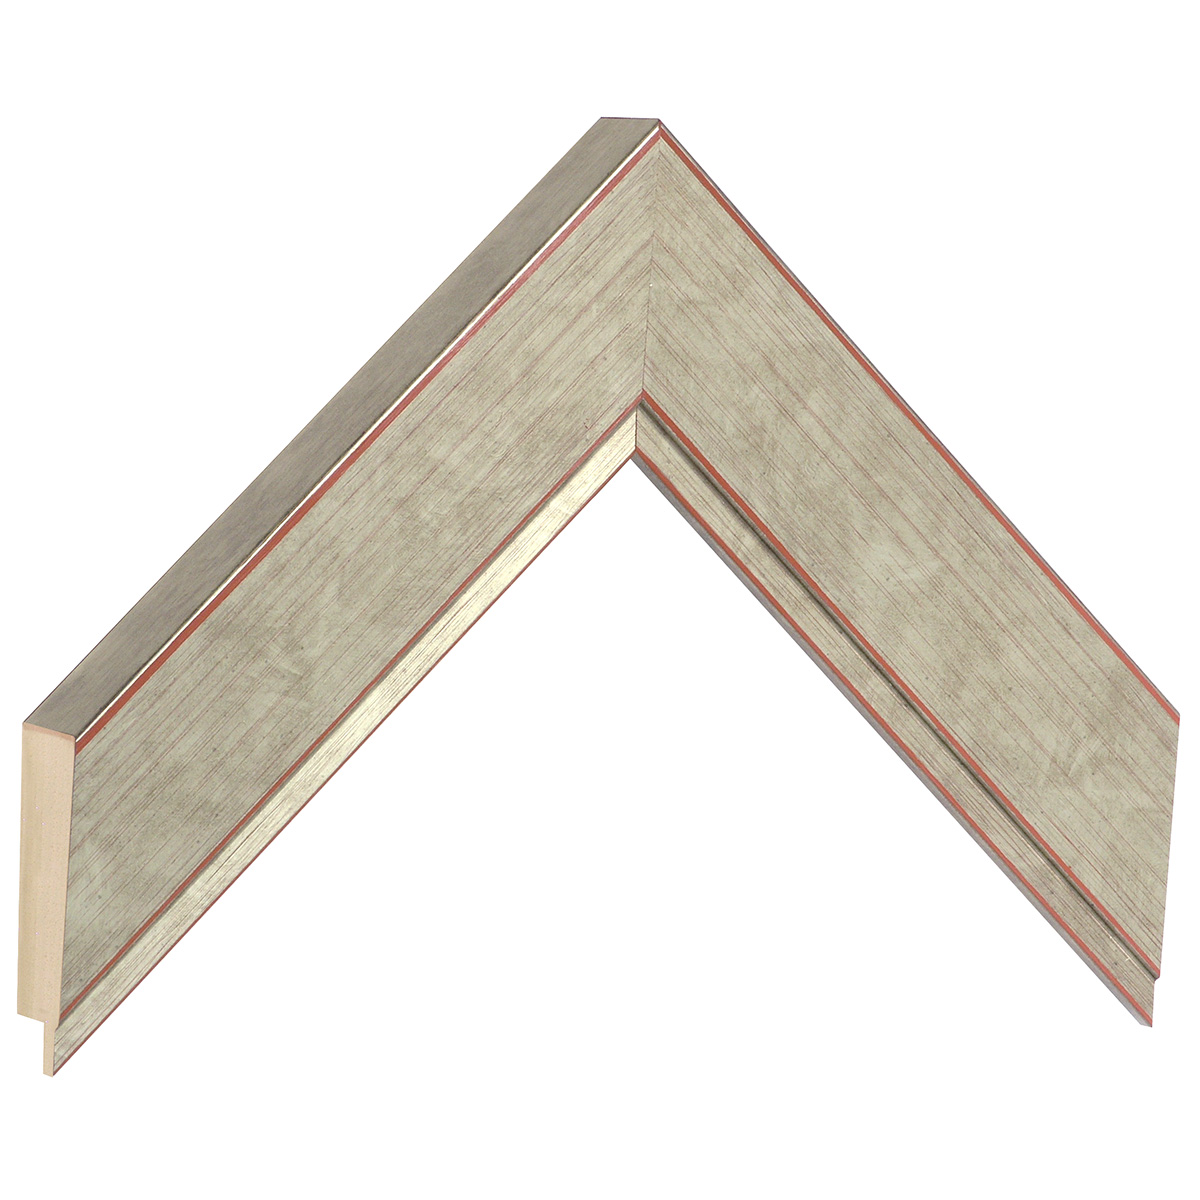 Moulding ayous - width 42mm height 27 - silver finish